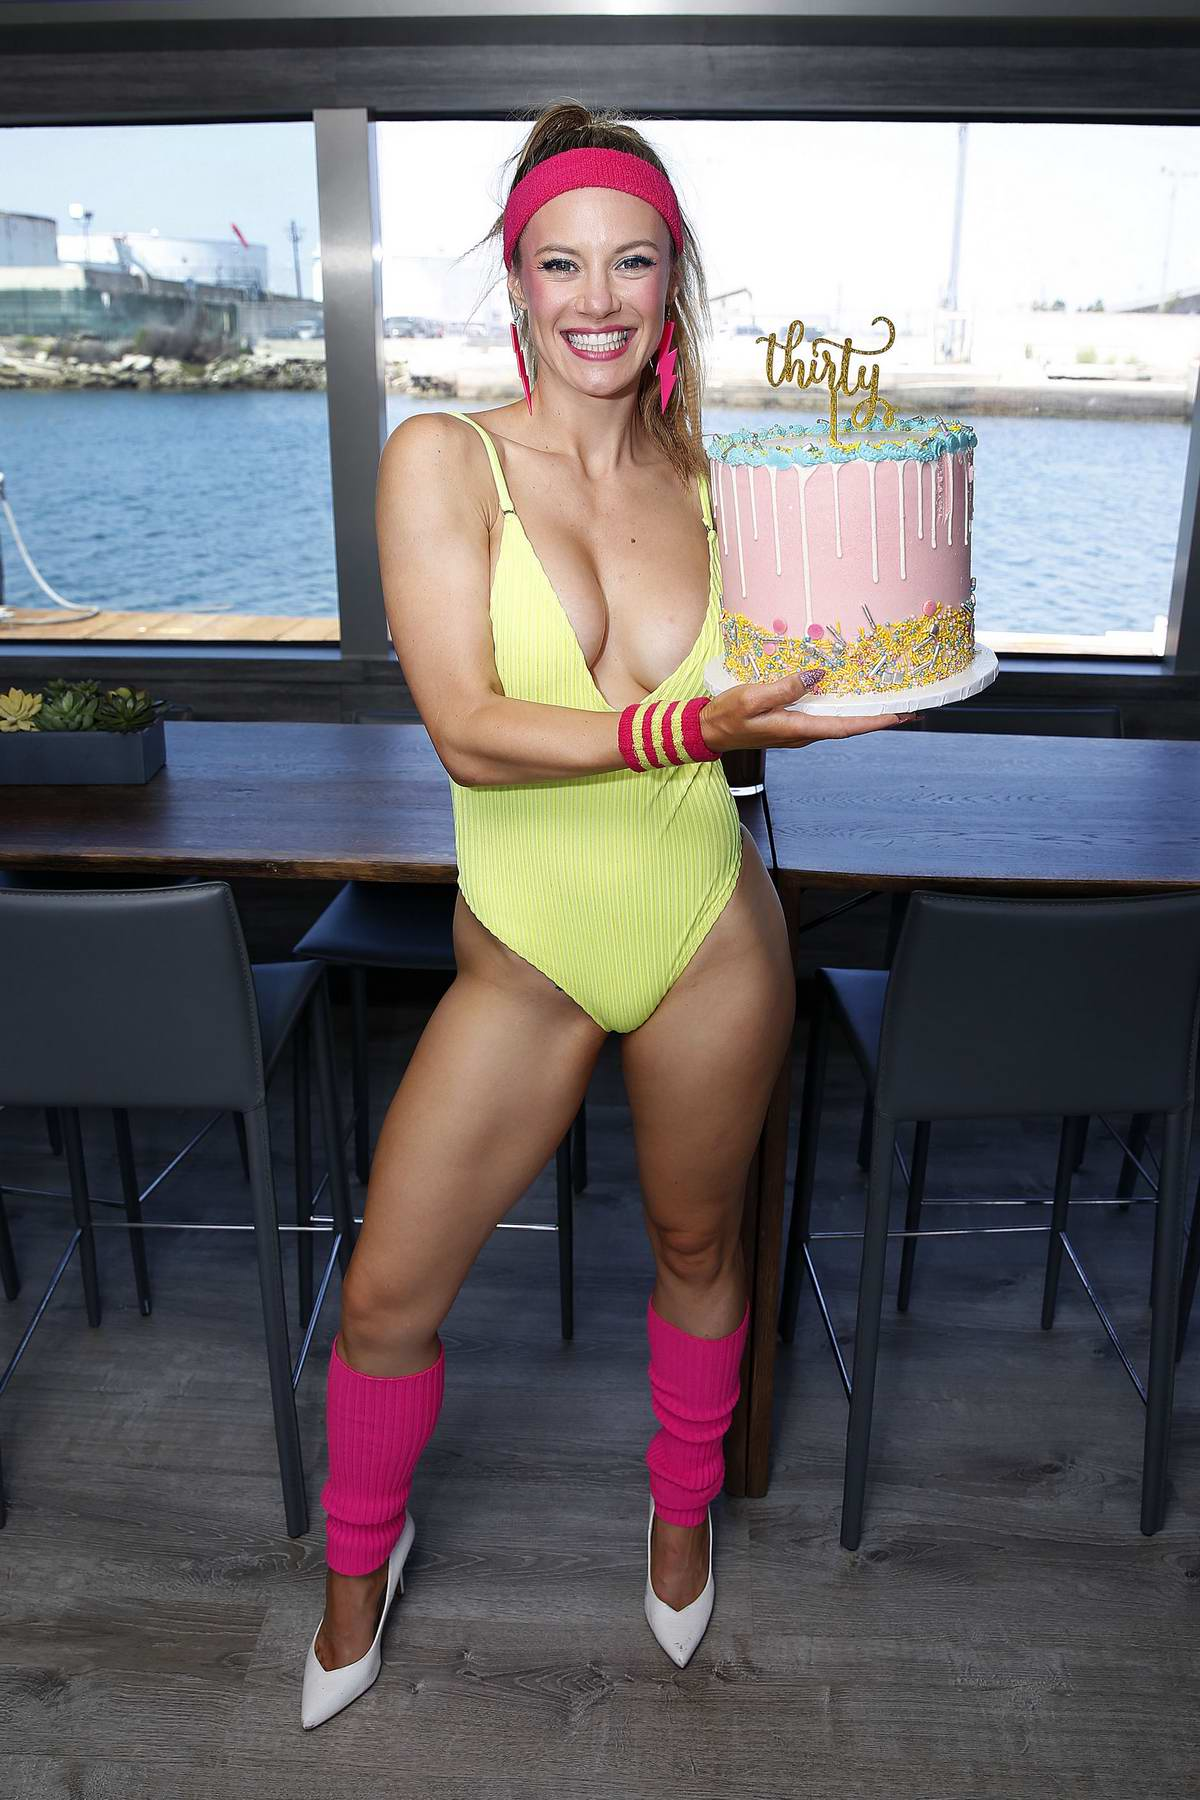 Danielle Savre wore a neon green swimsuit to celebrate her 30th birthday on a party boat with friends in Los Angeles